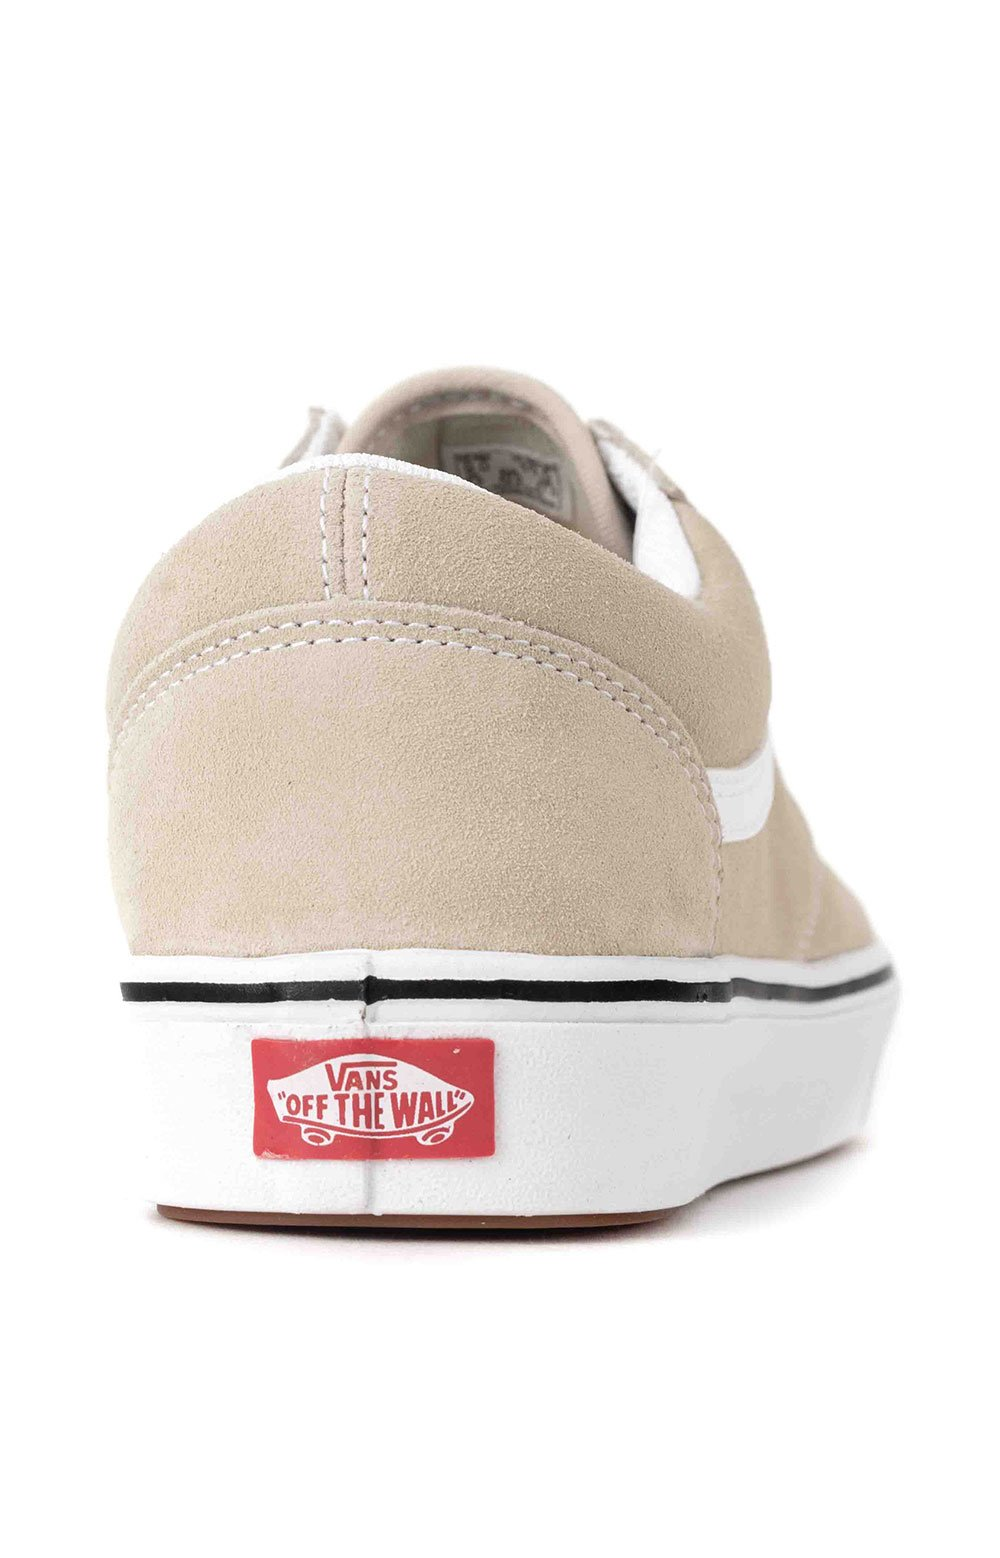 (WMA2QQ) Suede ComfyCush Old Skool Shoes - Oatmeal 5